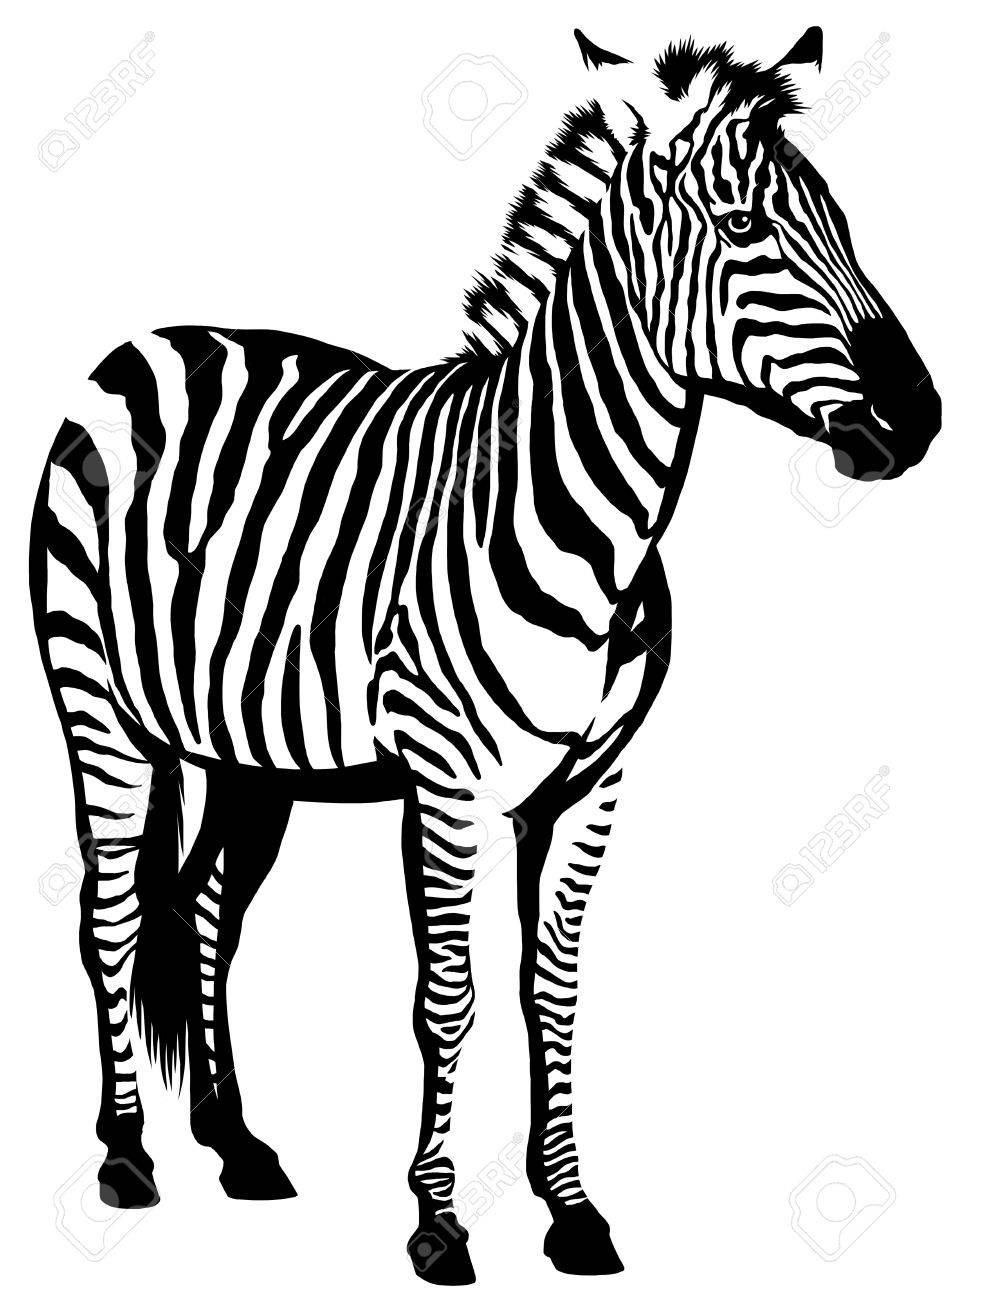 988x1300 Black And White Linear Paint Draw Zebra Illustration Stock Photo